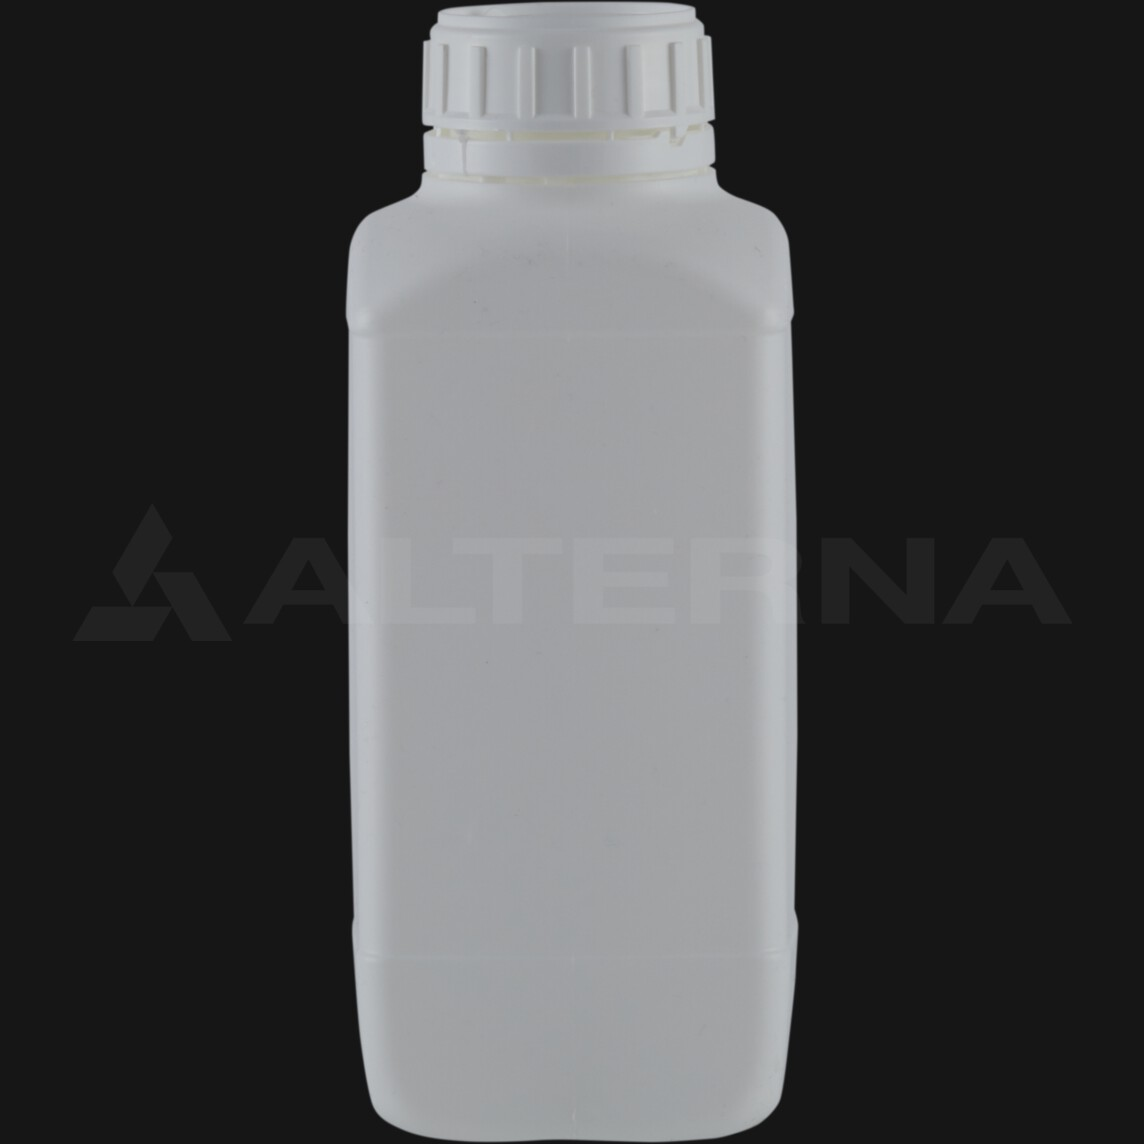 1000 ml HDPE Square Bottle with 50 mm Foam Seal Secure Cap